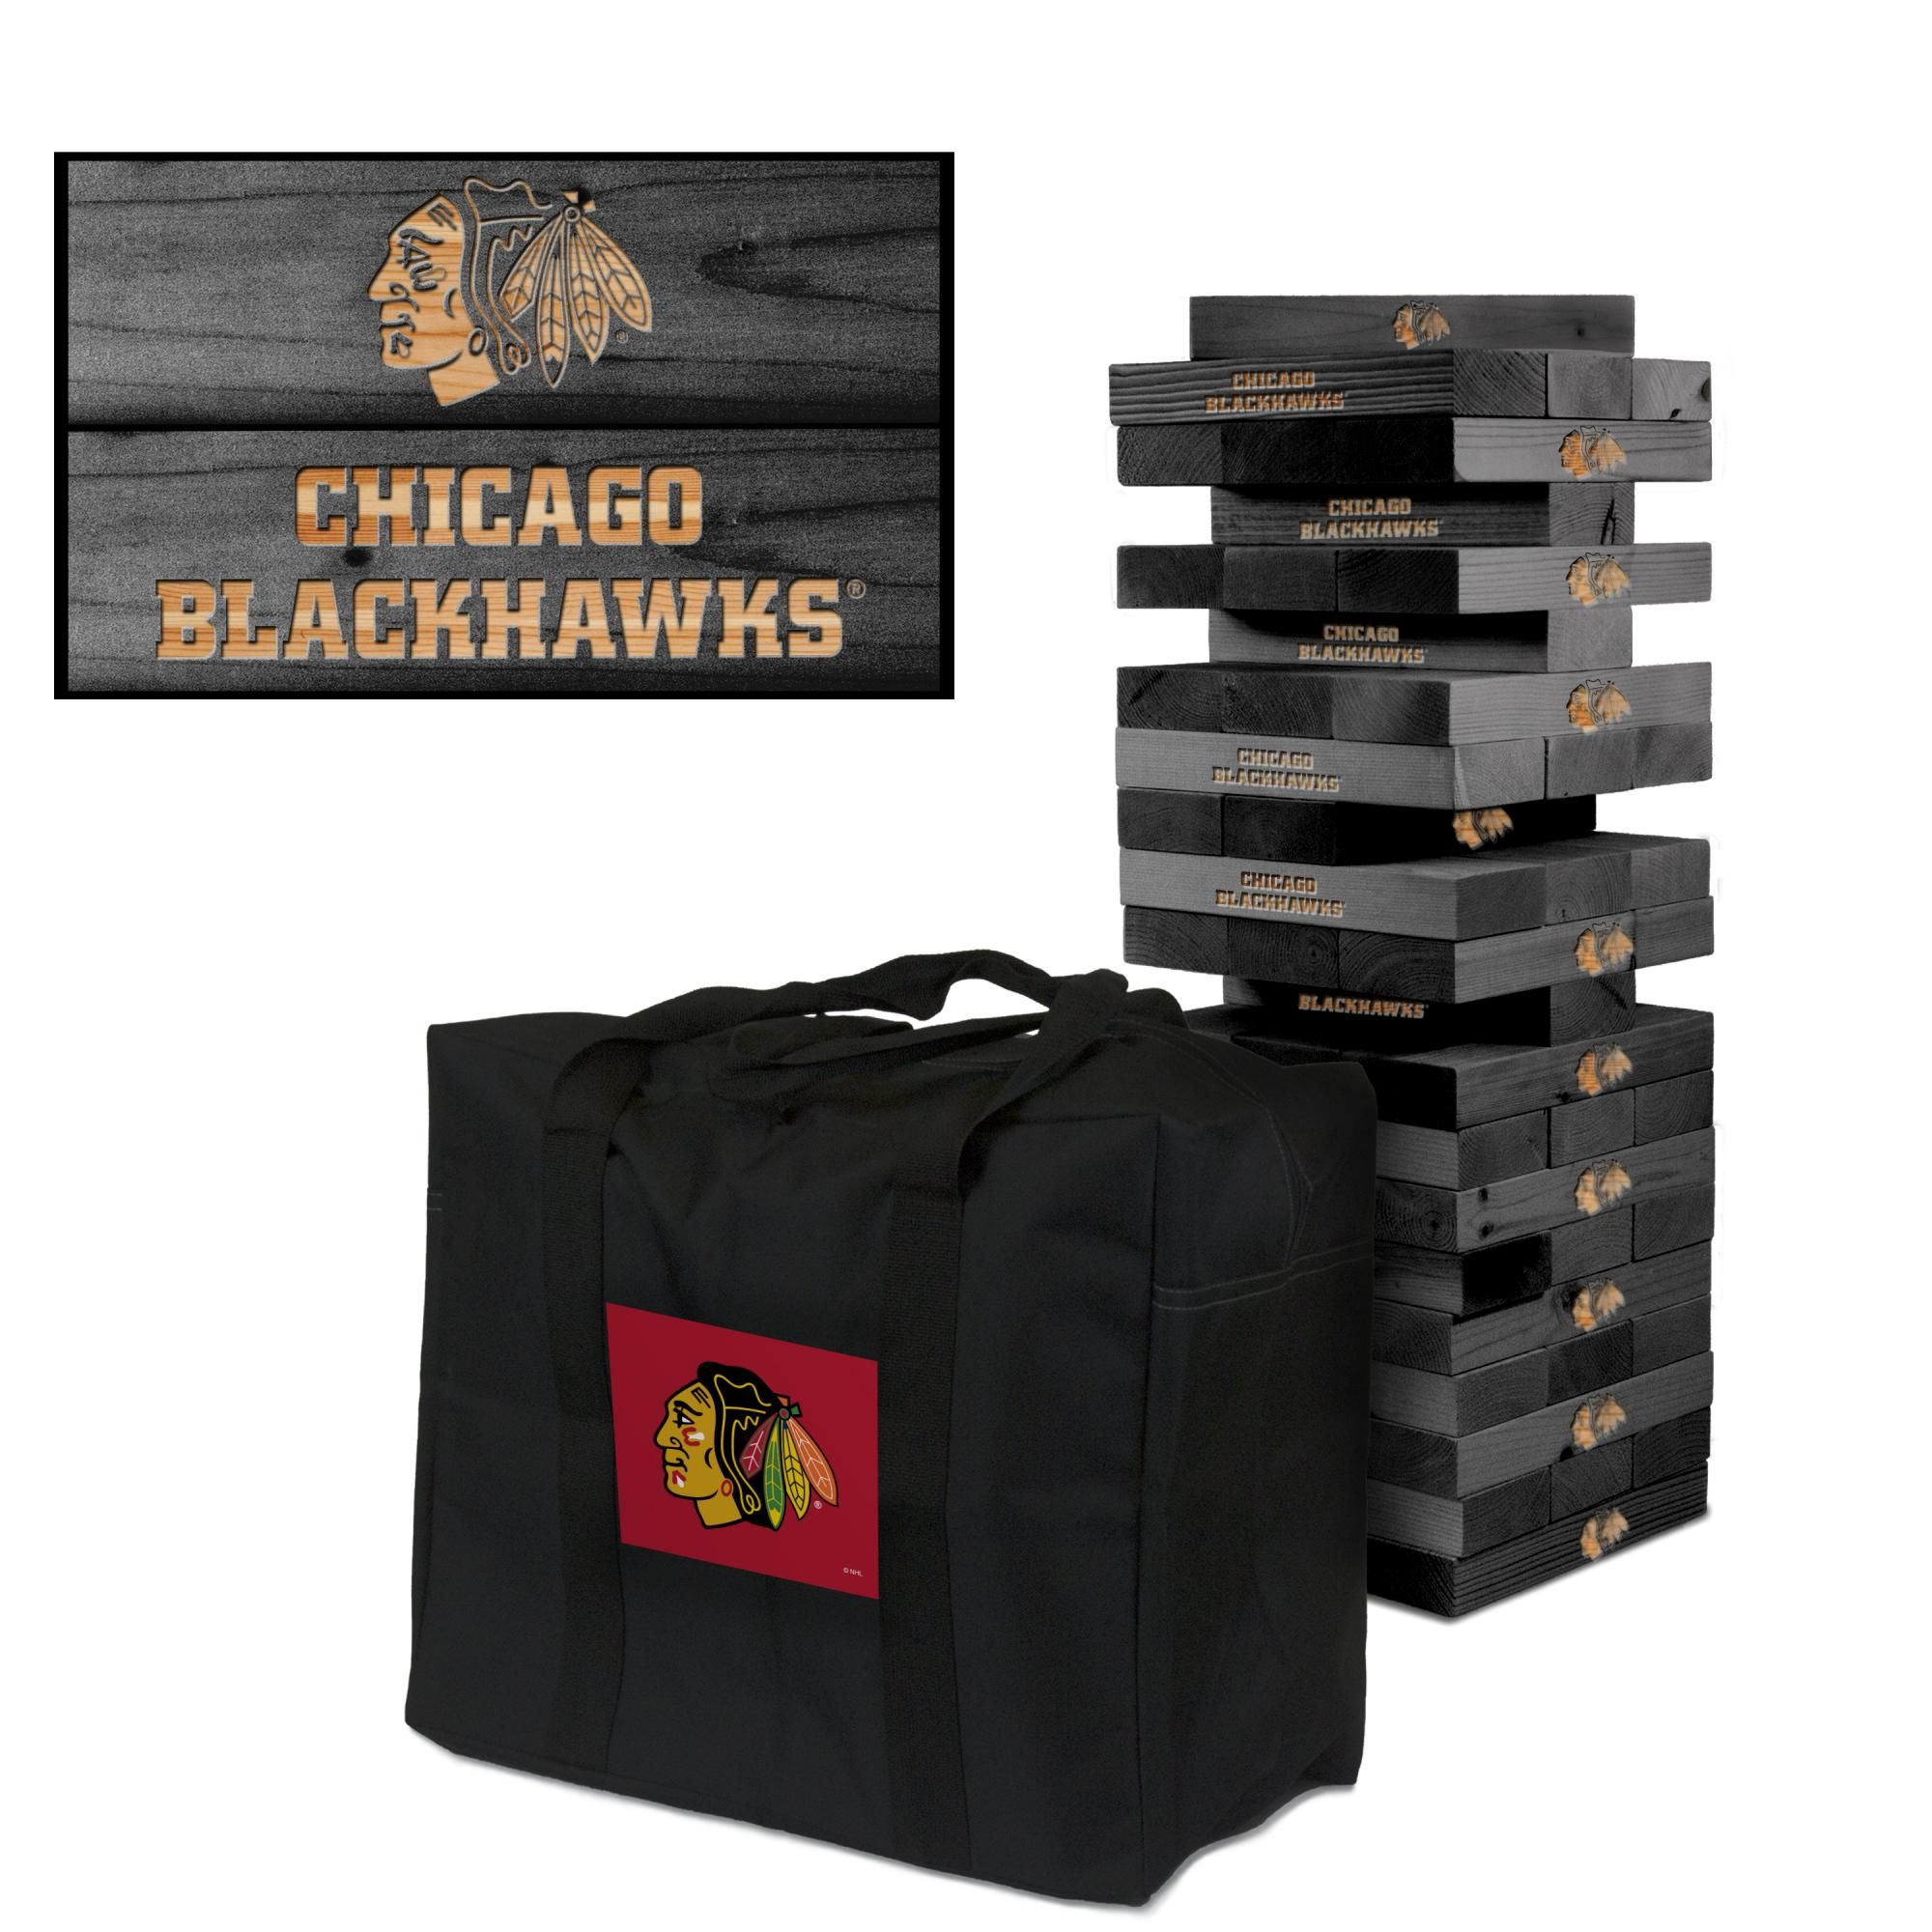 Chicago Blackhawks NHL Giant Onyx Stained Tumble Tower #victorytailgate